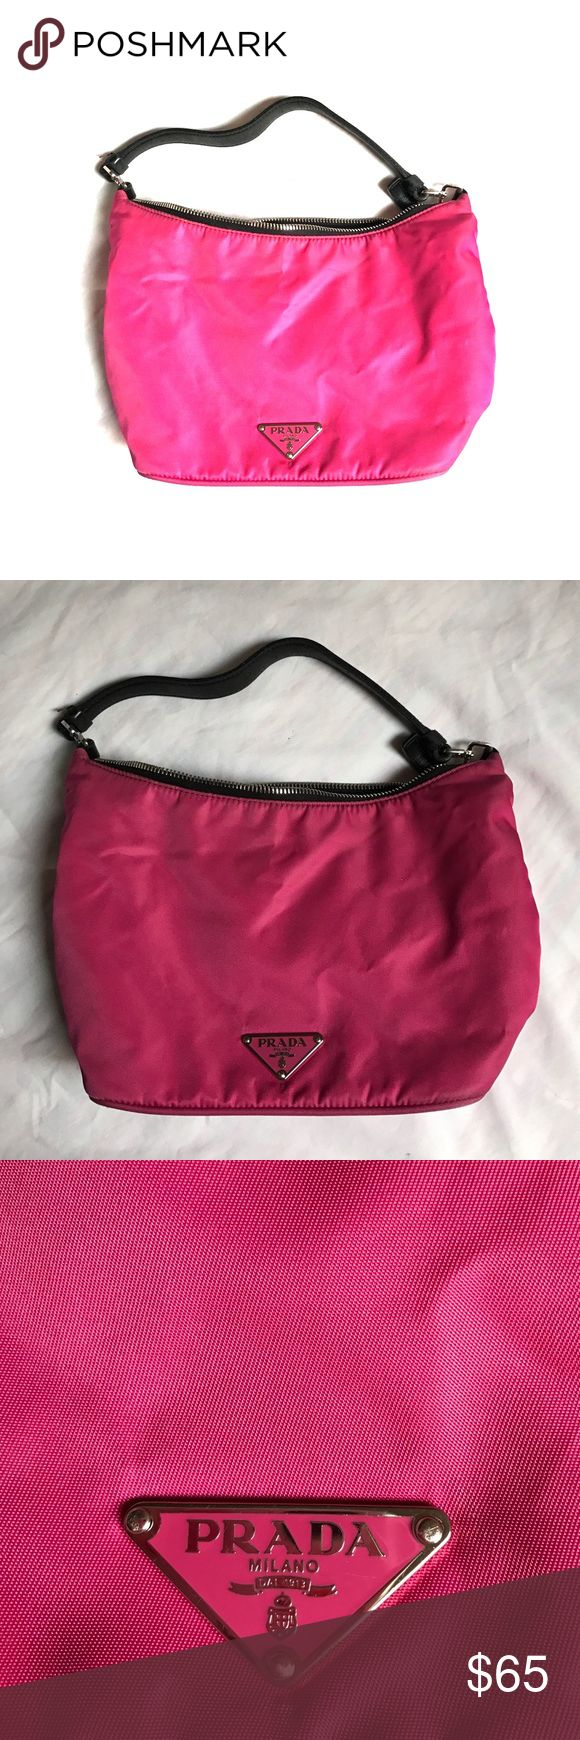 """FLASH SALE! 👛Pink Prada Purse SALE TIL 5PM EST😍 MONDAY FLASH SALE THROUGH 5 PM EST😍. Genuine Prada bag, this is a small purse - pink nylon with black leather straps. Overall this is in great shape, there is some fraying on the strap from use - see pictures. It measures 5.5"""" tall in the middle (say vertically where the logo is placed), 8"""" wide at the zipper, 3.5"""" across the bottom panel. There is one internal zipper compartment. EUC. Bonus 🎁 with any single-item purchase over $20 or…"""